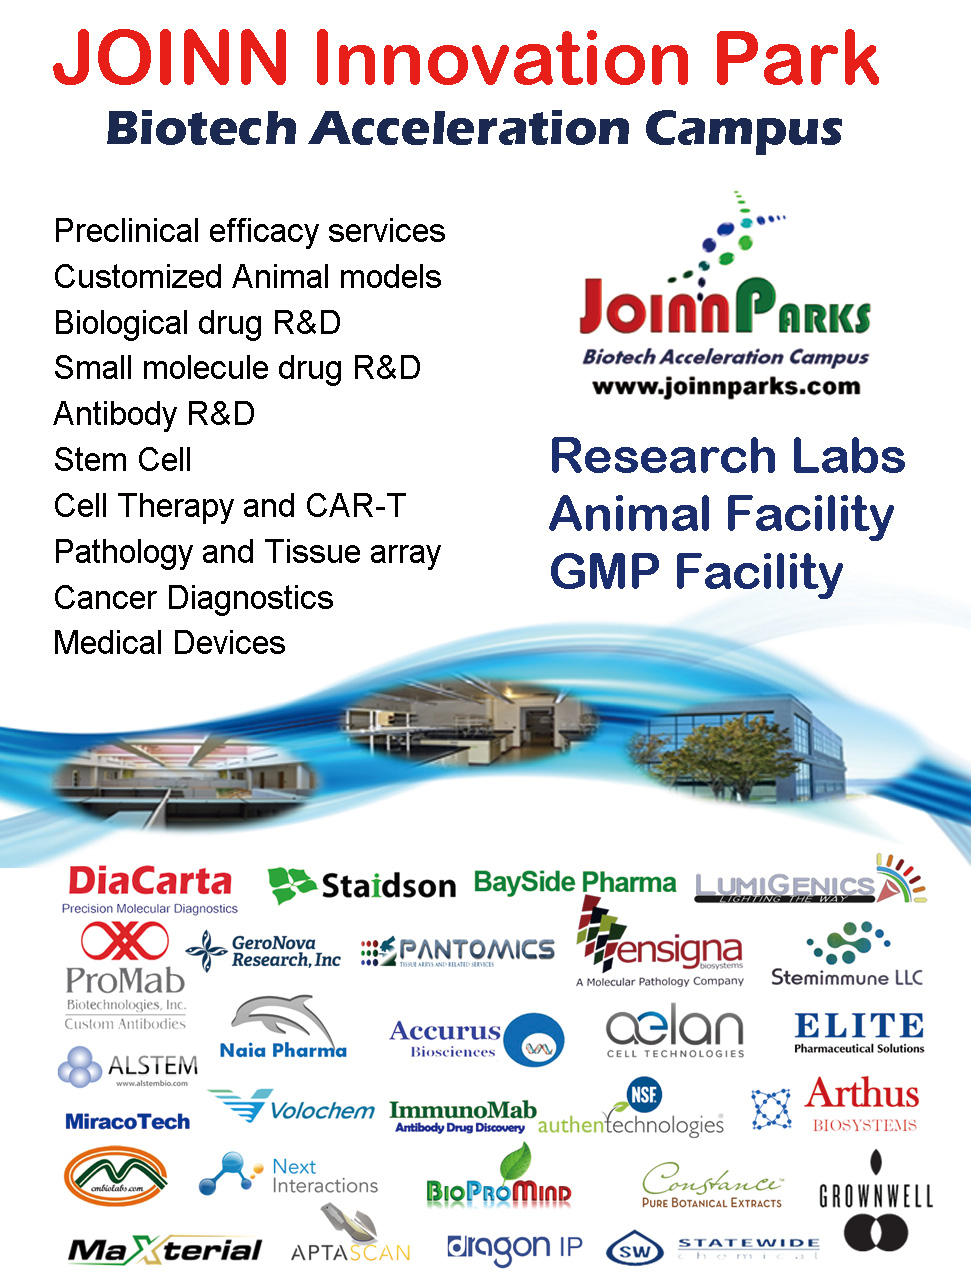 JOINN Innovation Park in BioPacific Conference in May 2016